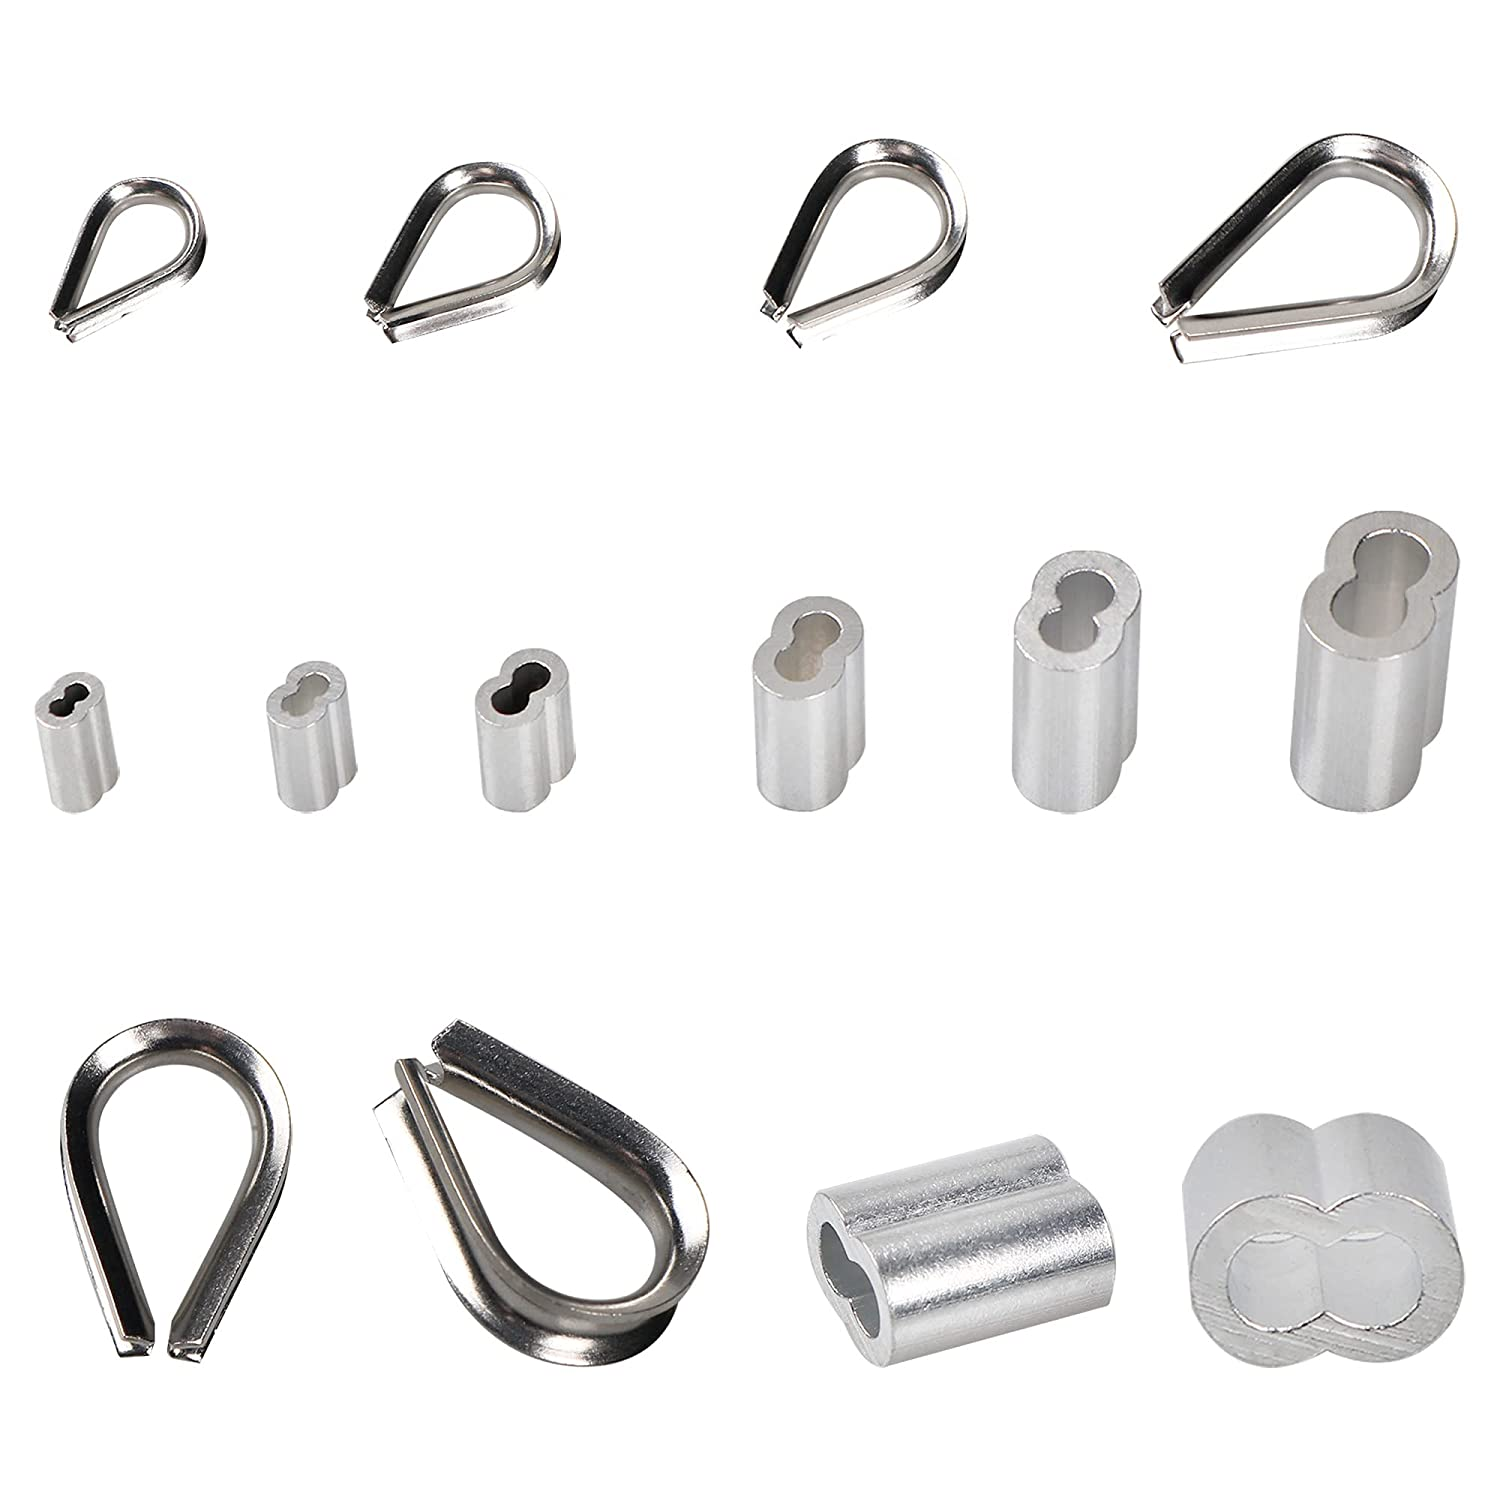 TEHAUX 1set Stainless Steel Thimble Aluminum Crimping Loop Sleeve Kit Wire Rope Cable Thimbles Rigging